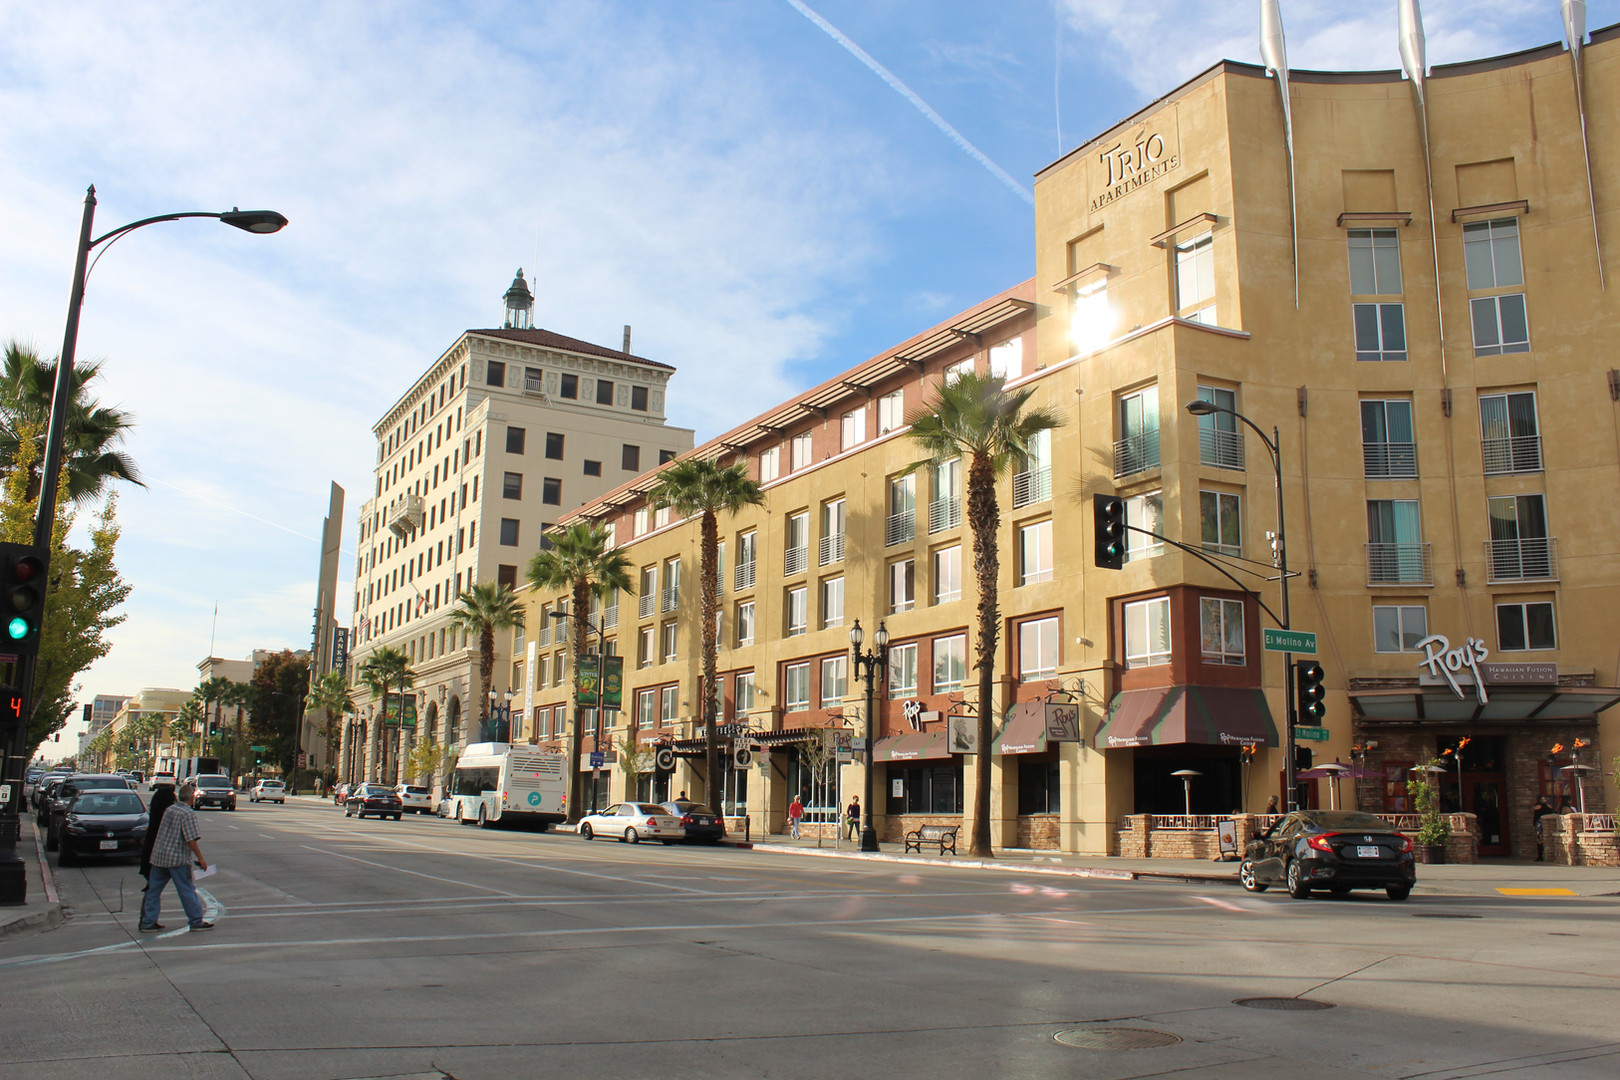 Playhouse District - Visit Pasadena (3).